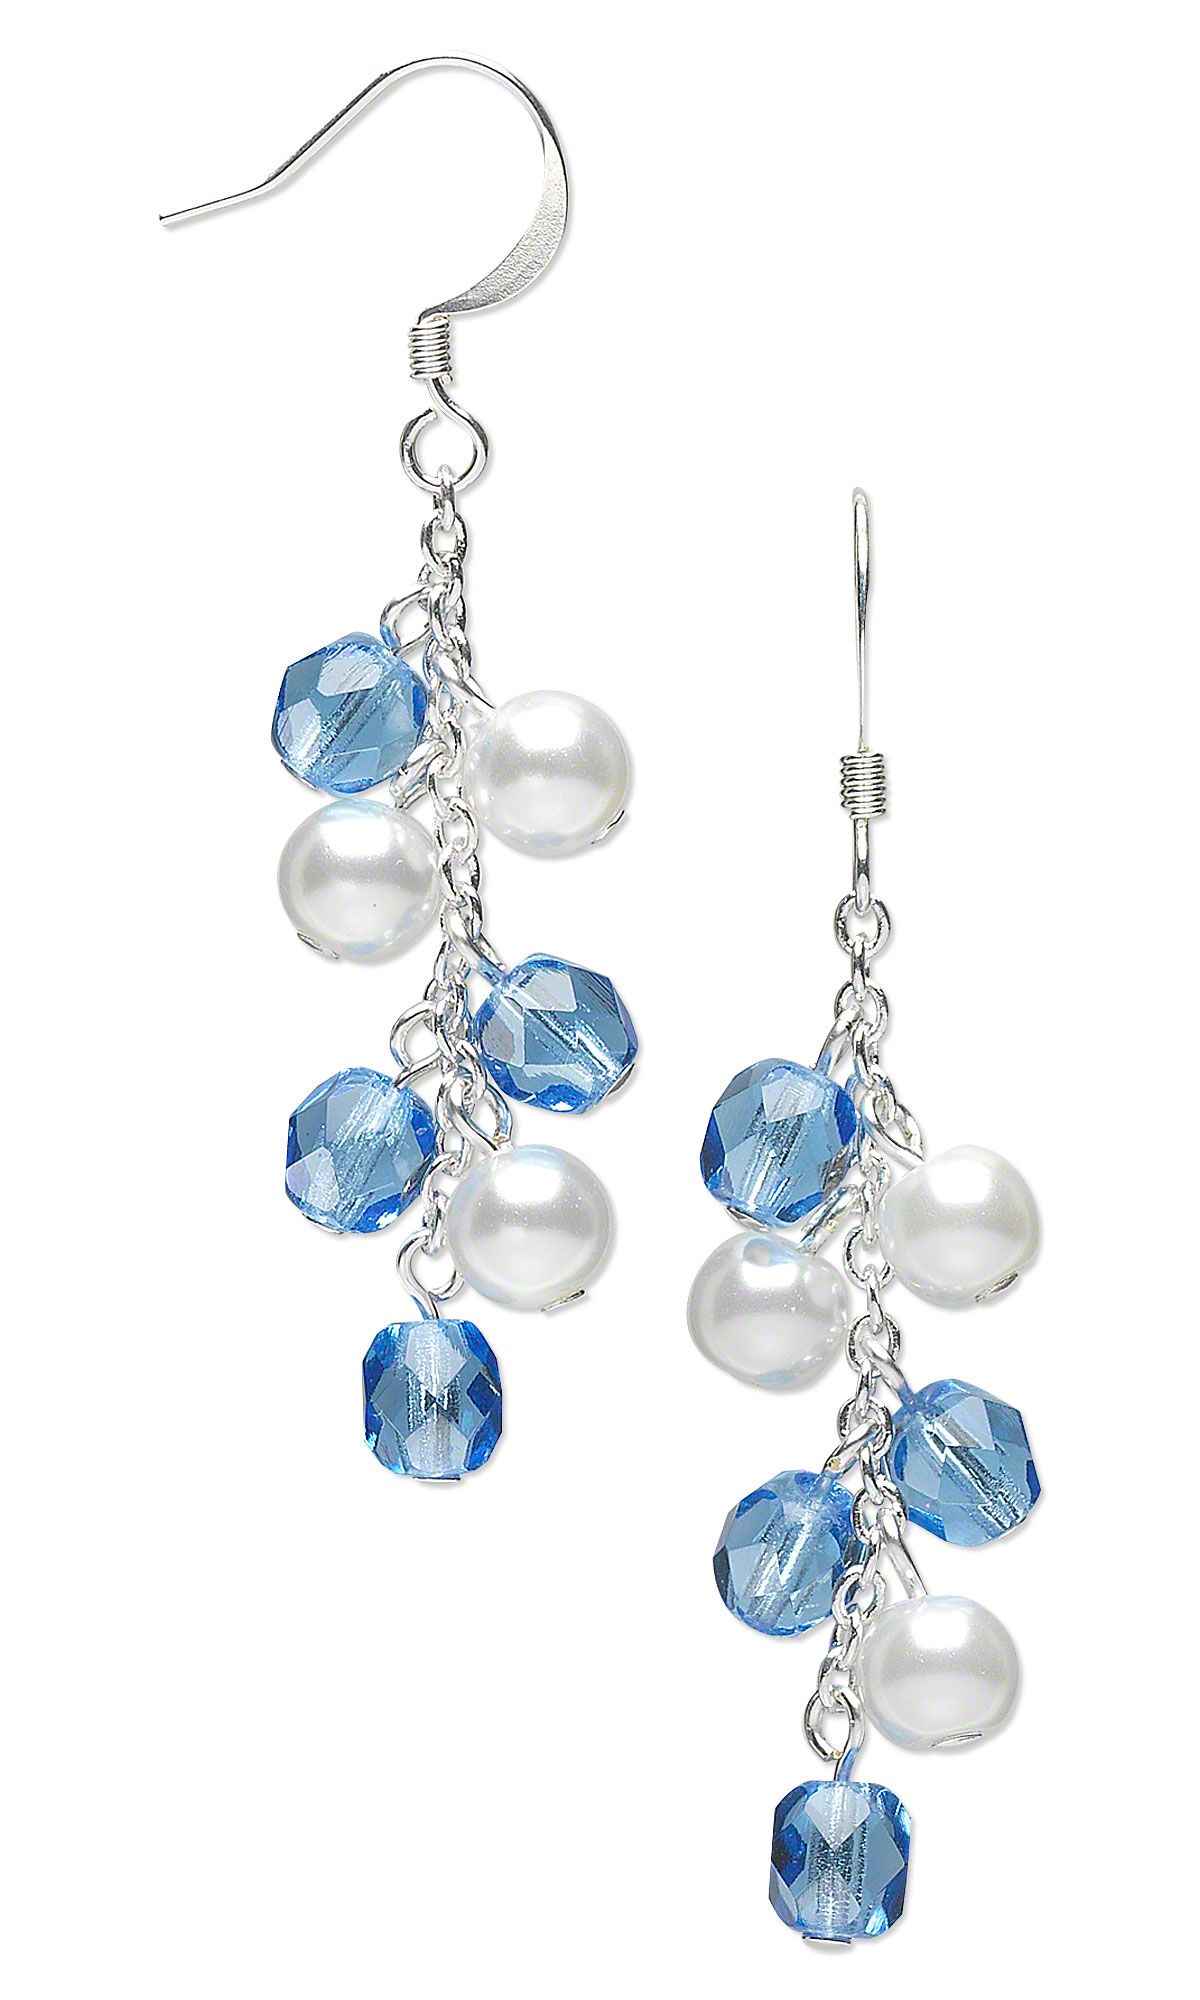 jewelry design earrings with czech fire polished glass beads and